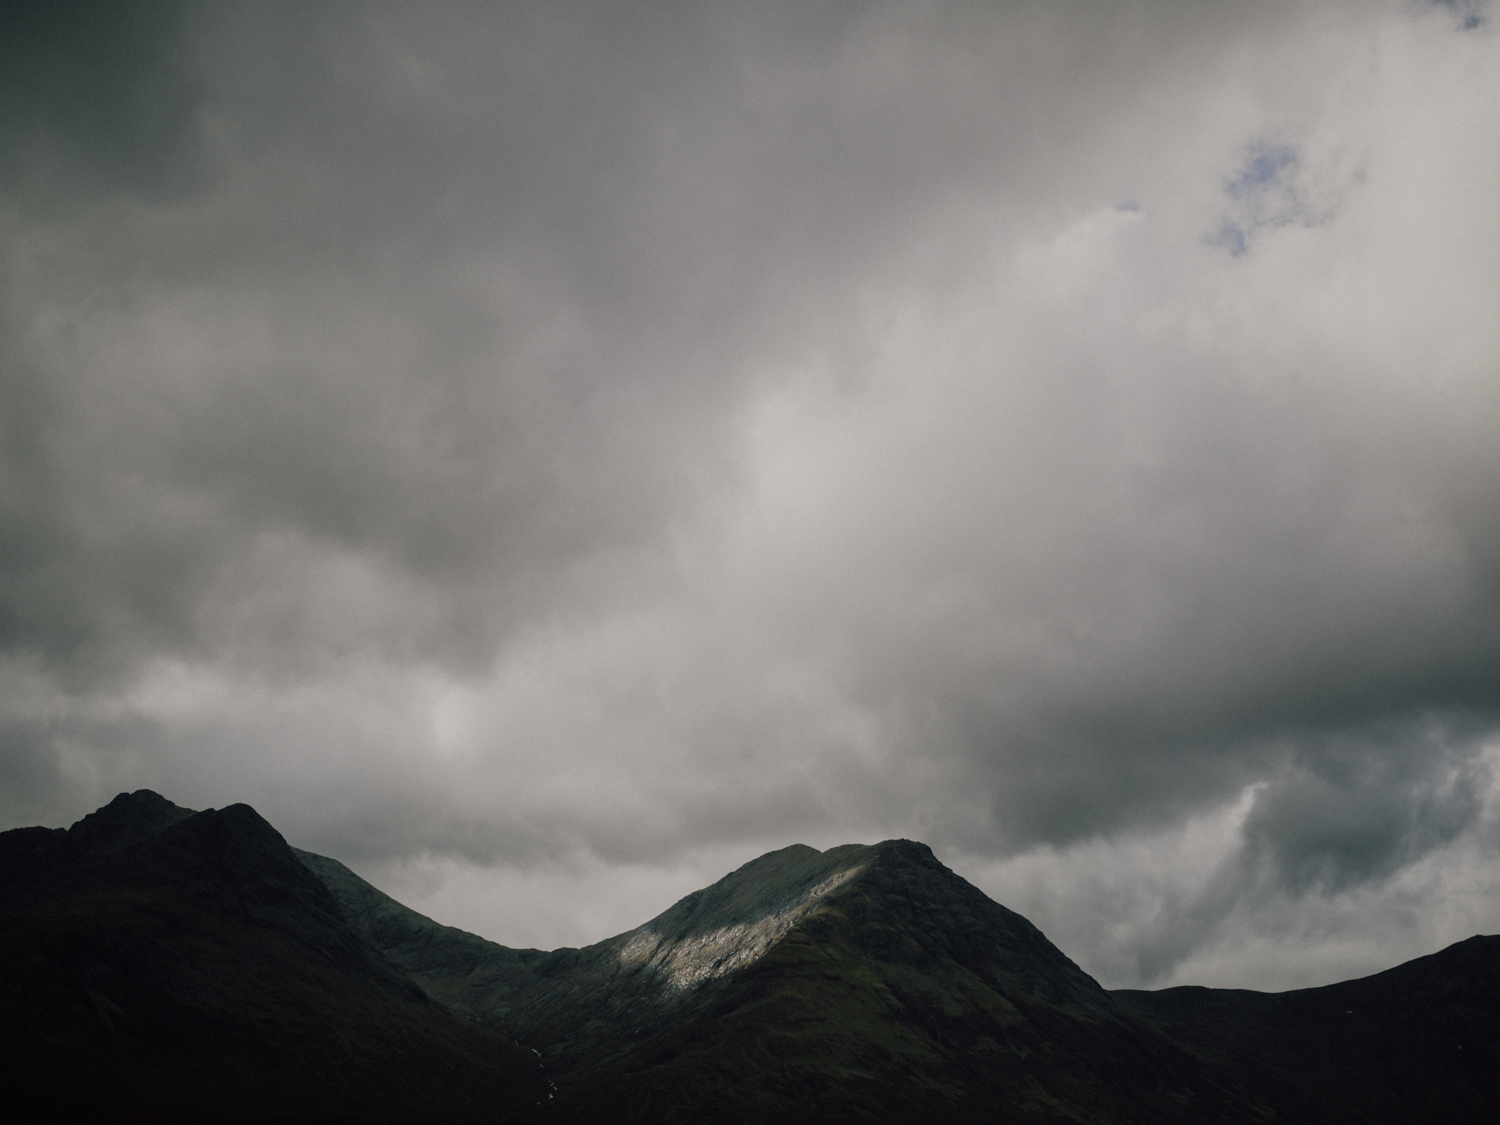 capyture-wedding-photographer-destination-elopement-isle-skye-scotland-21